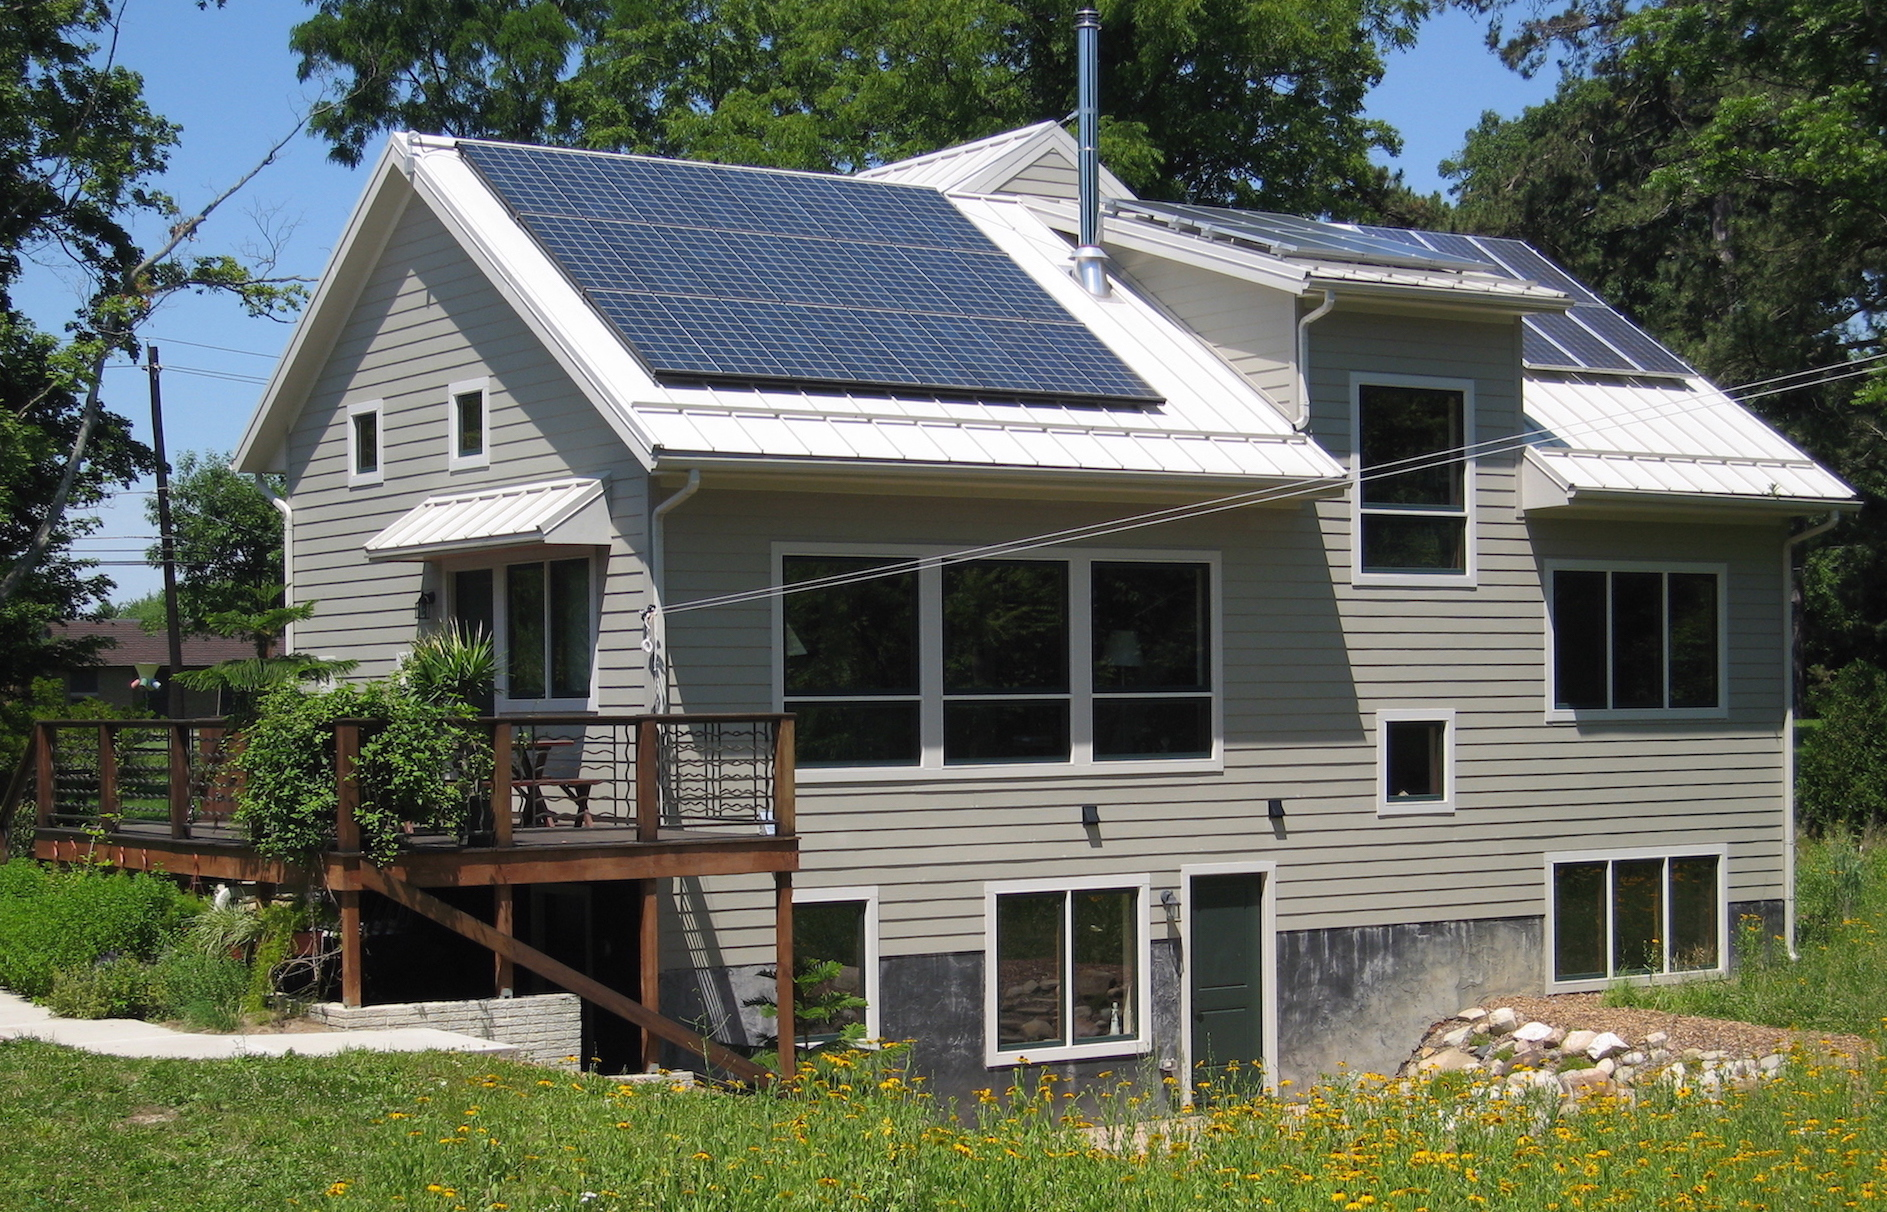 Trail Magic S and W sides showing PV panels deck and sun patio; a positive energy home in Oberlin OH